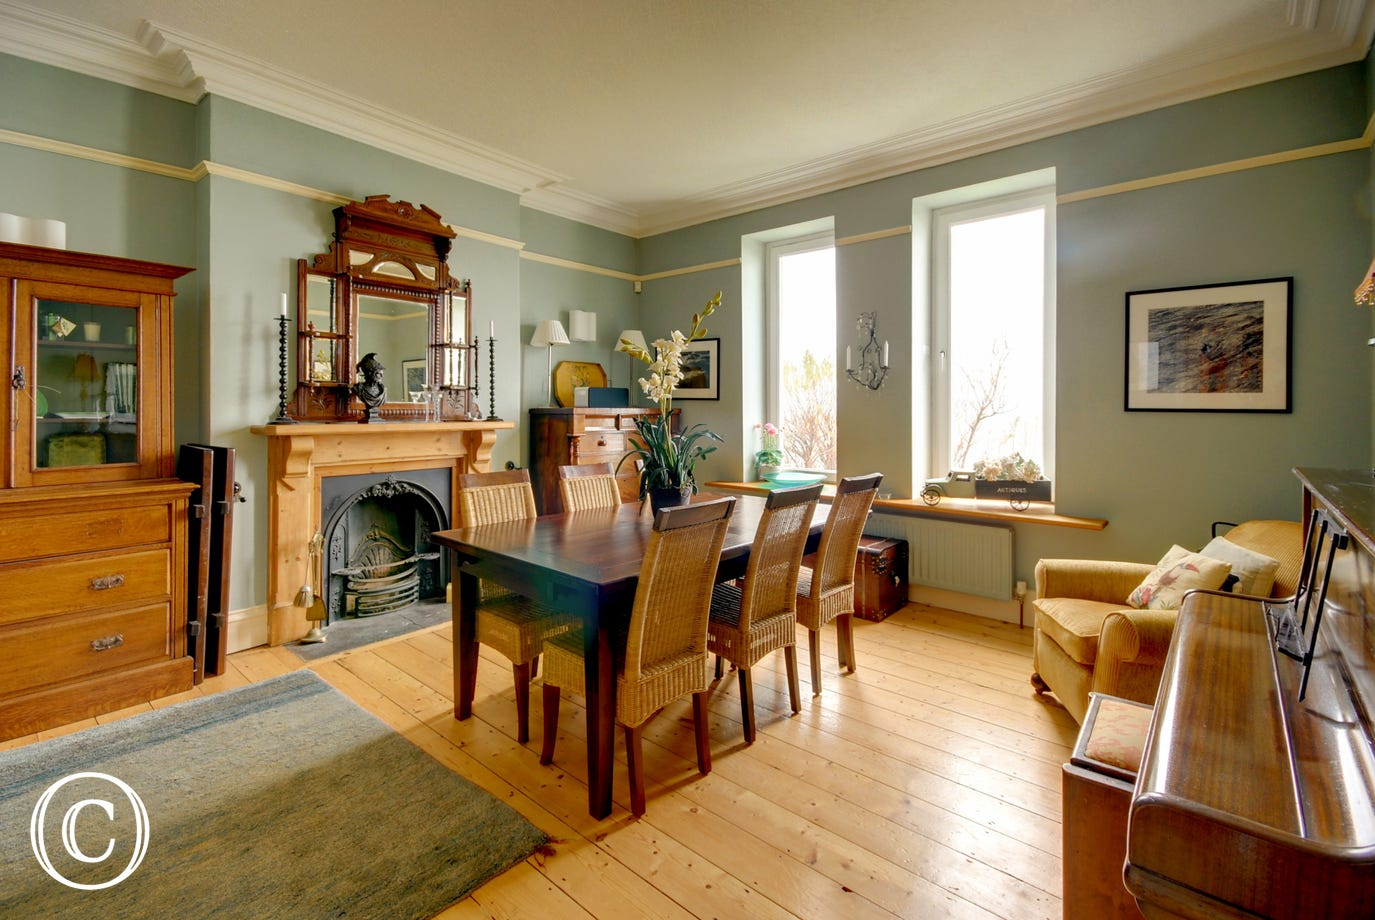 The sizeable dining room, with decorative fireplace, has double doors opening into the pretty bespoke style kitchen